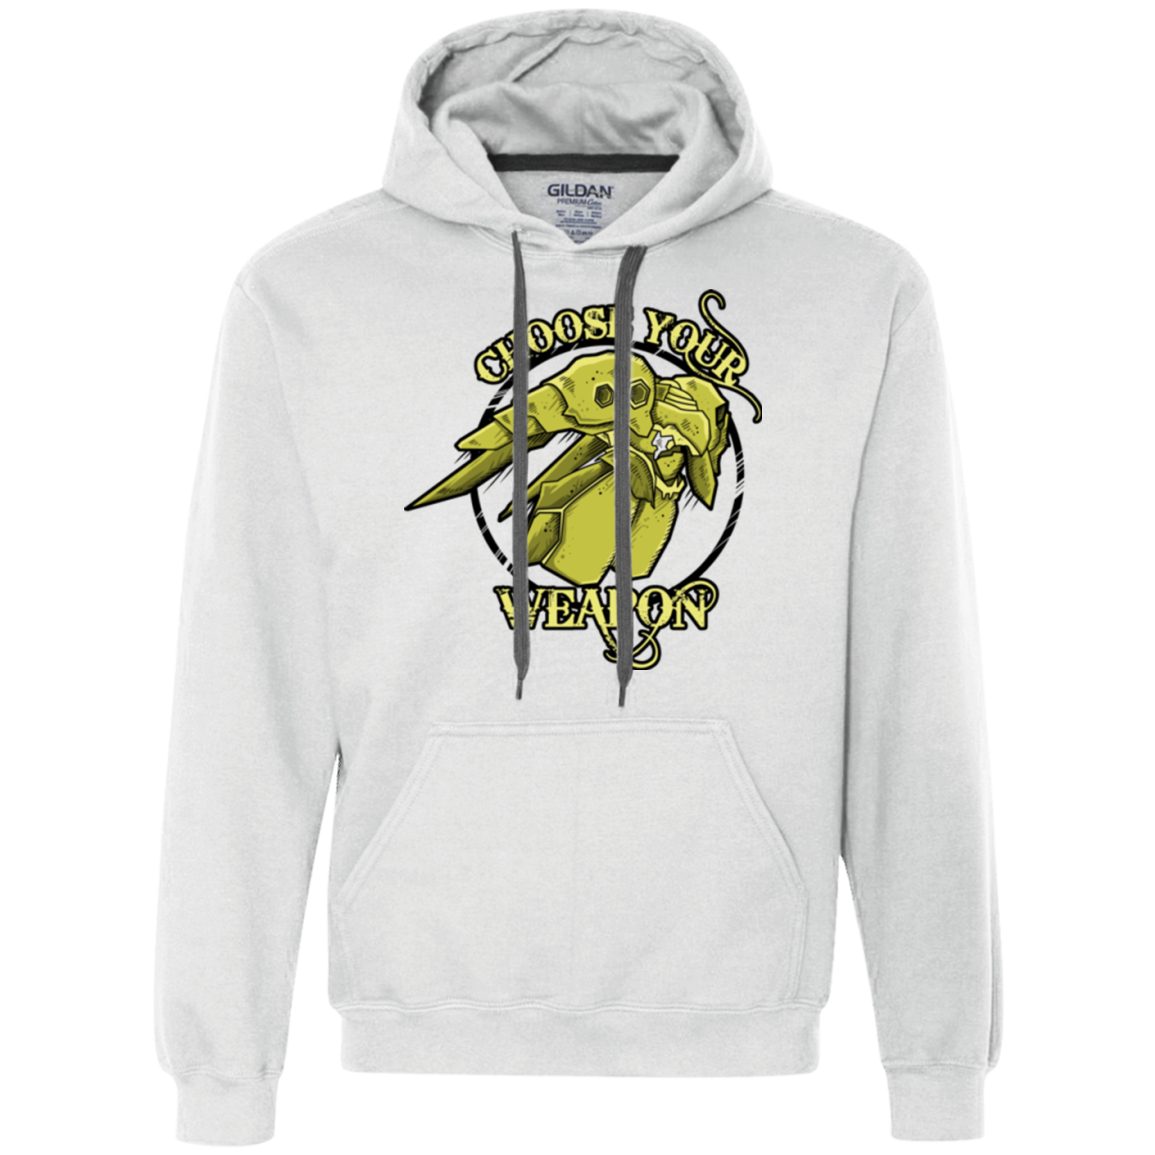 CHOOSE YOUR WEAPON Premium Fleece Hoodie